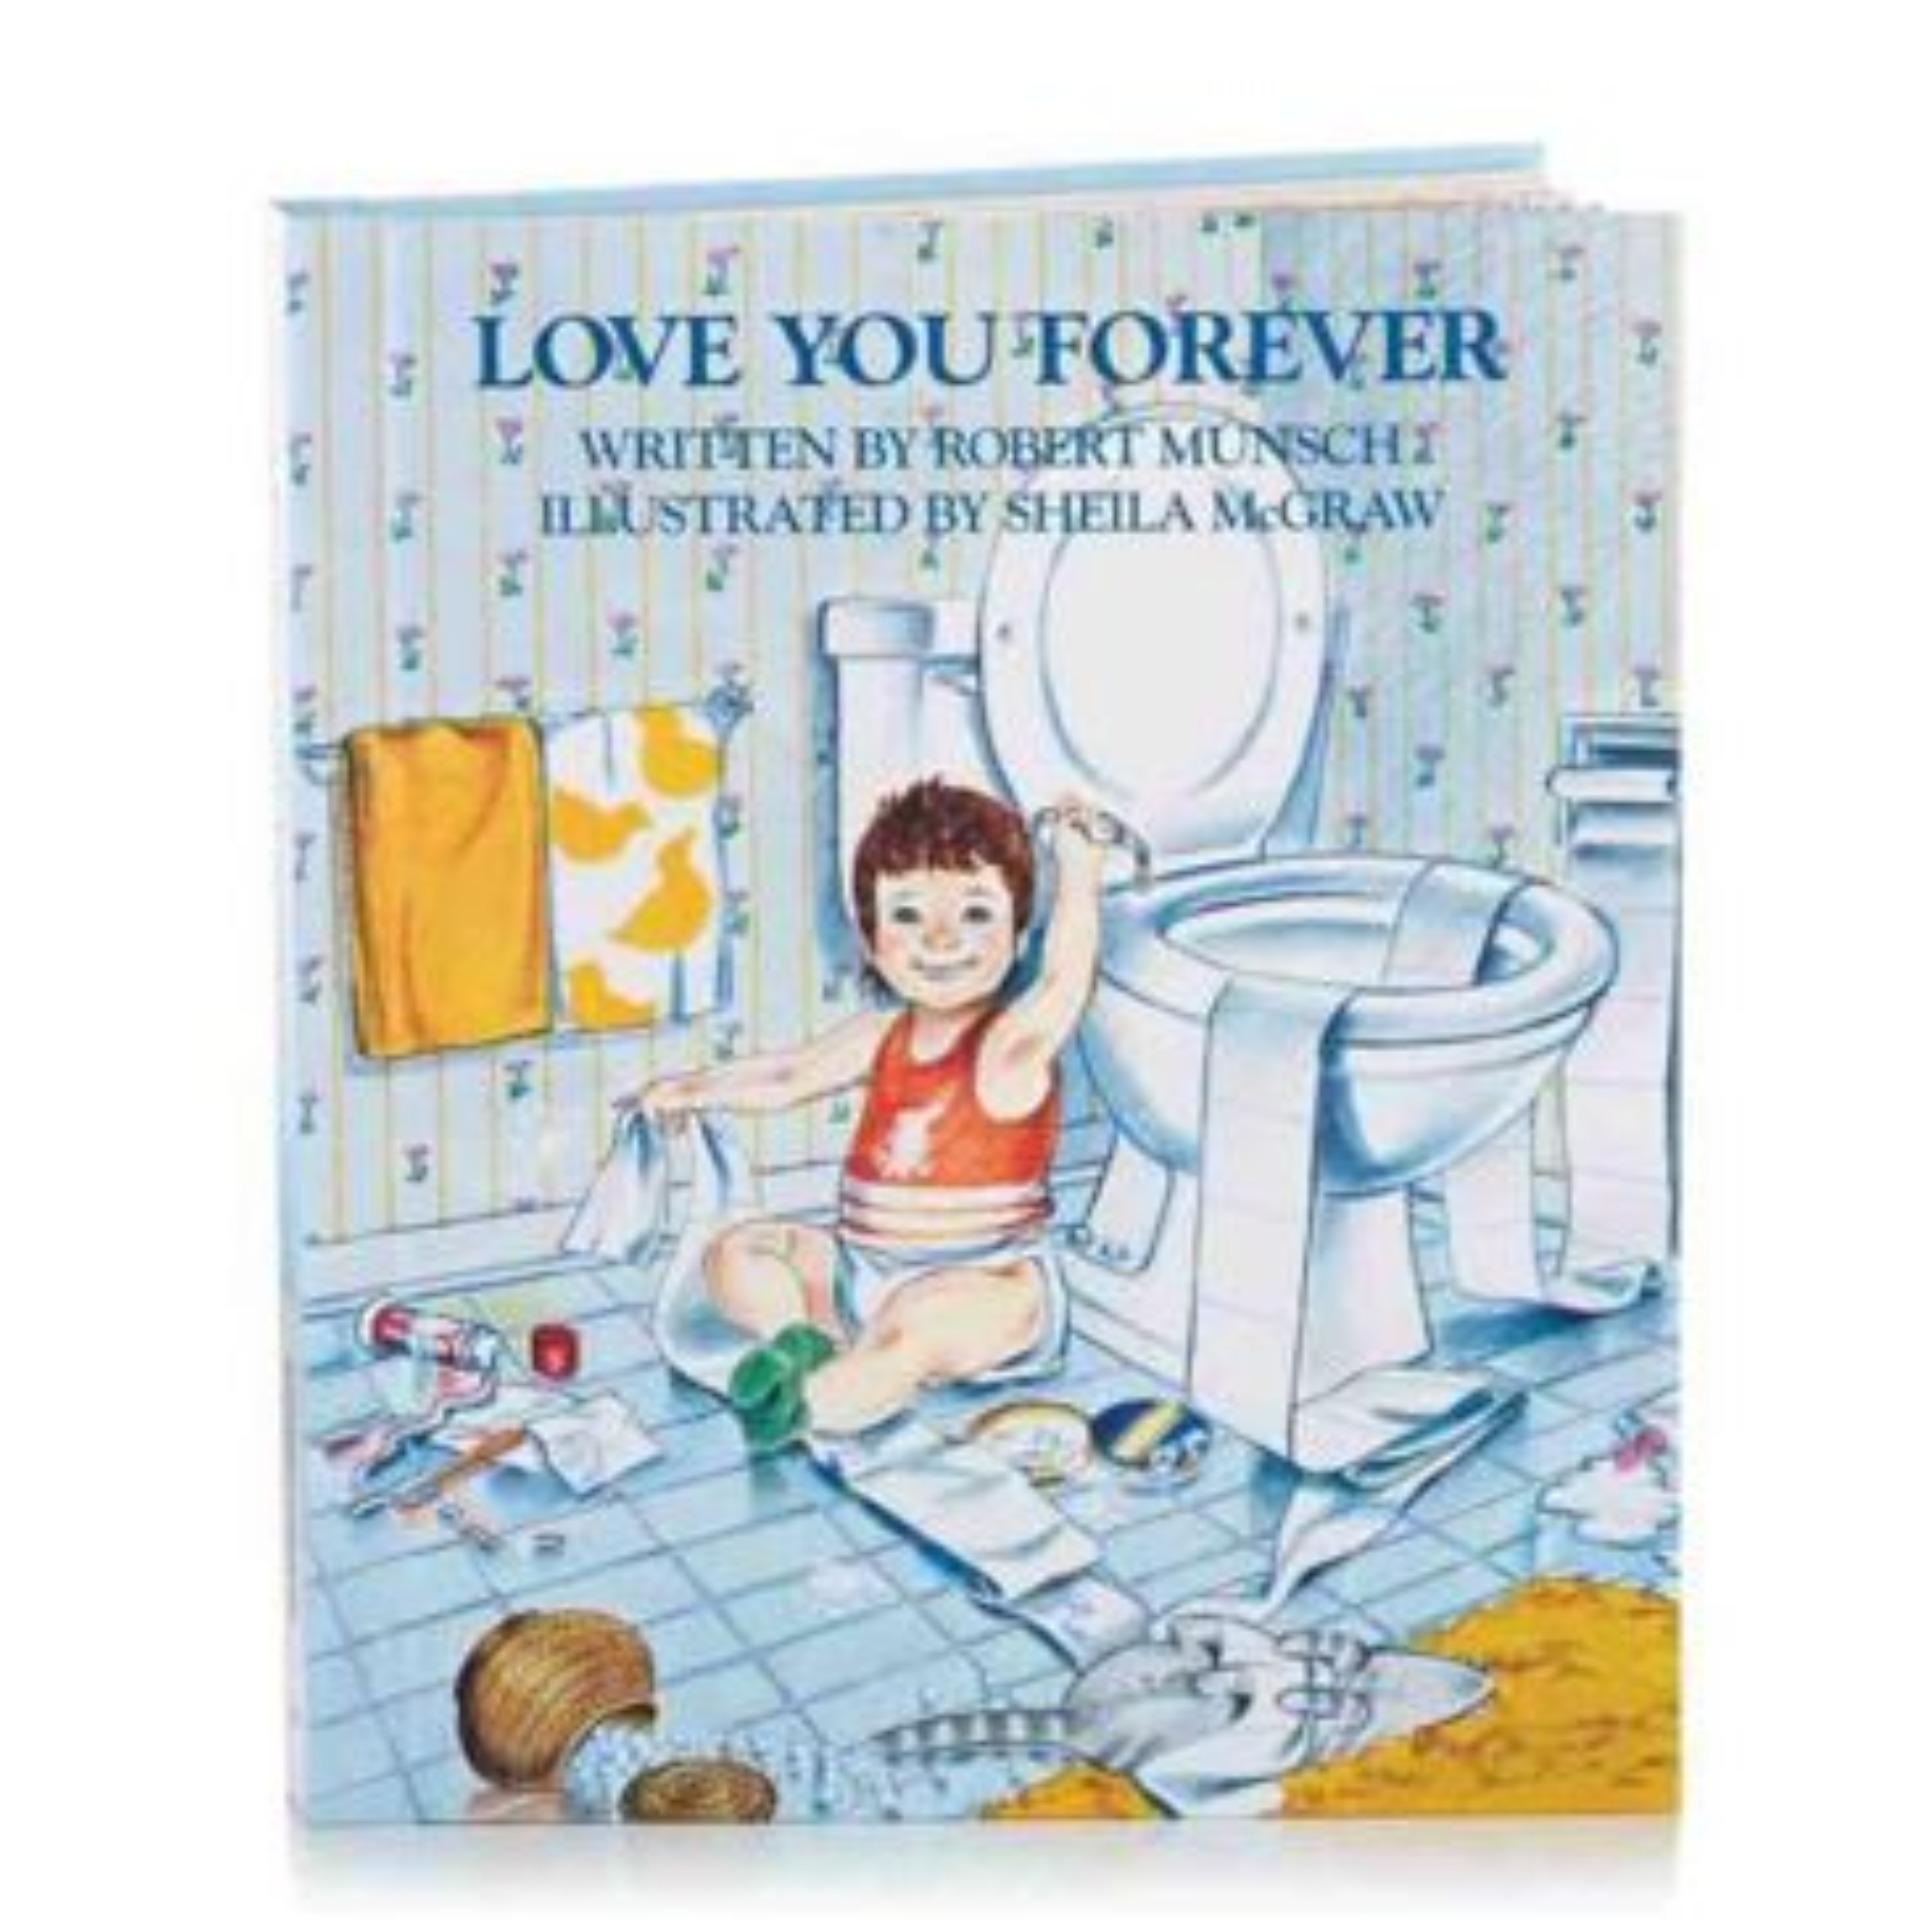 Love you forever Robert Munsch ebook